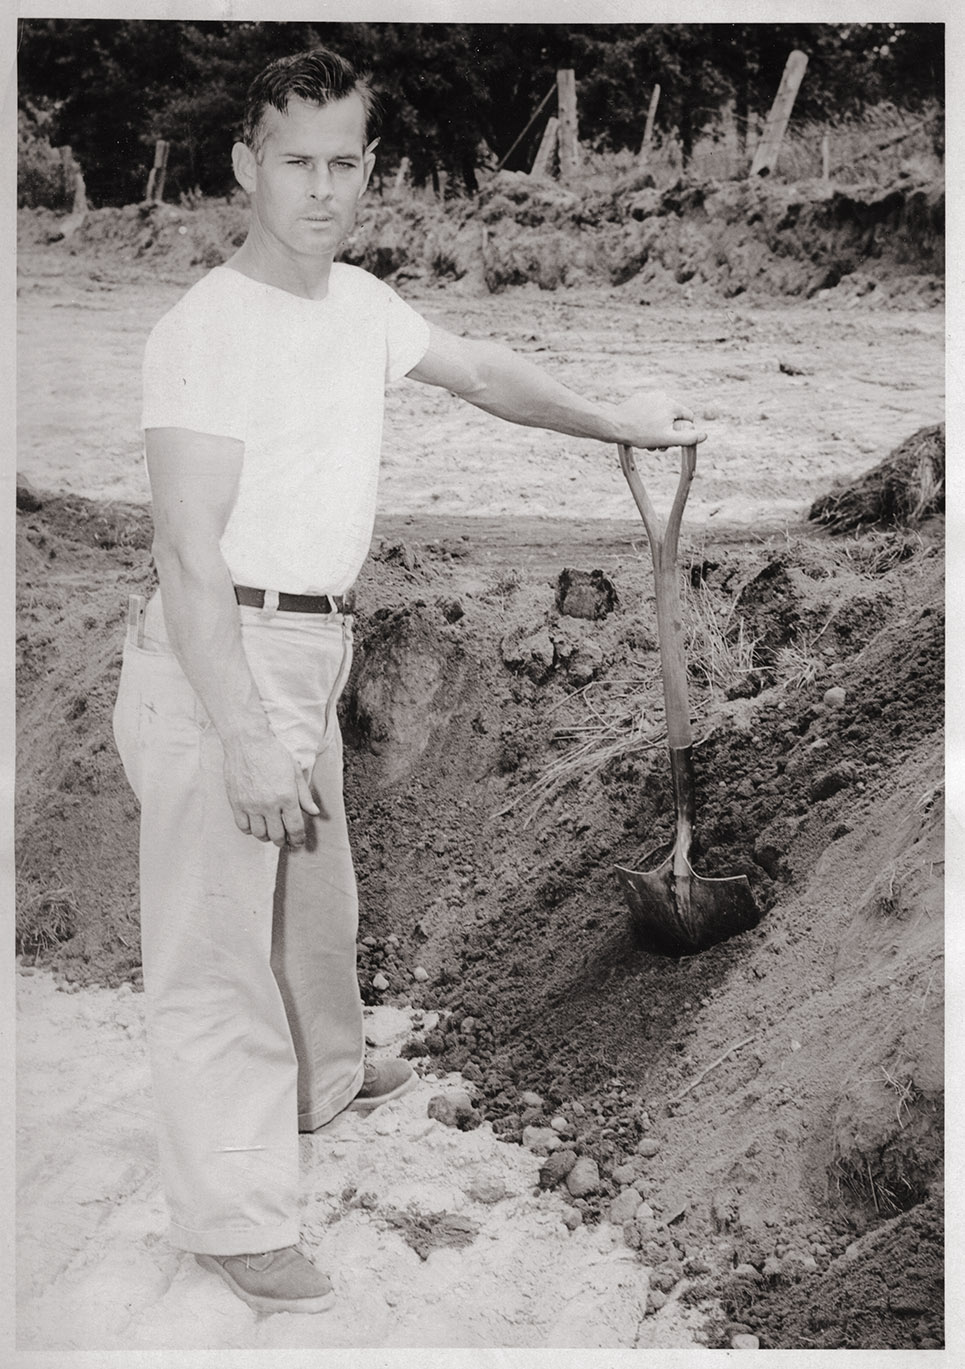 Image of Terry B. Kinney at groundbreaking, July 1954